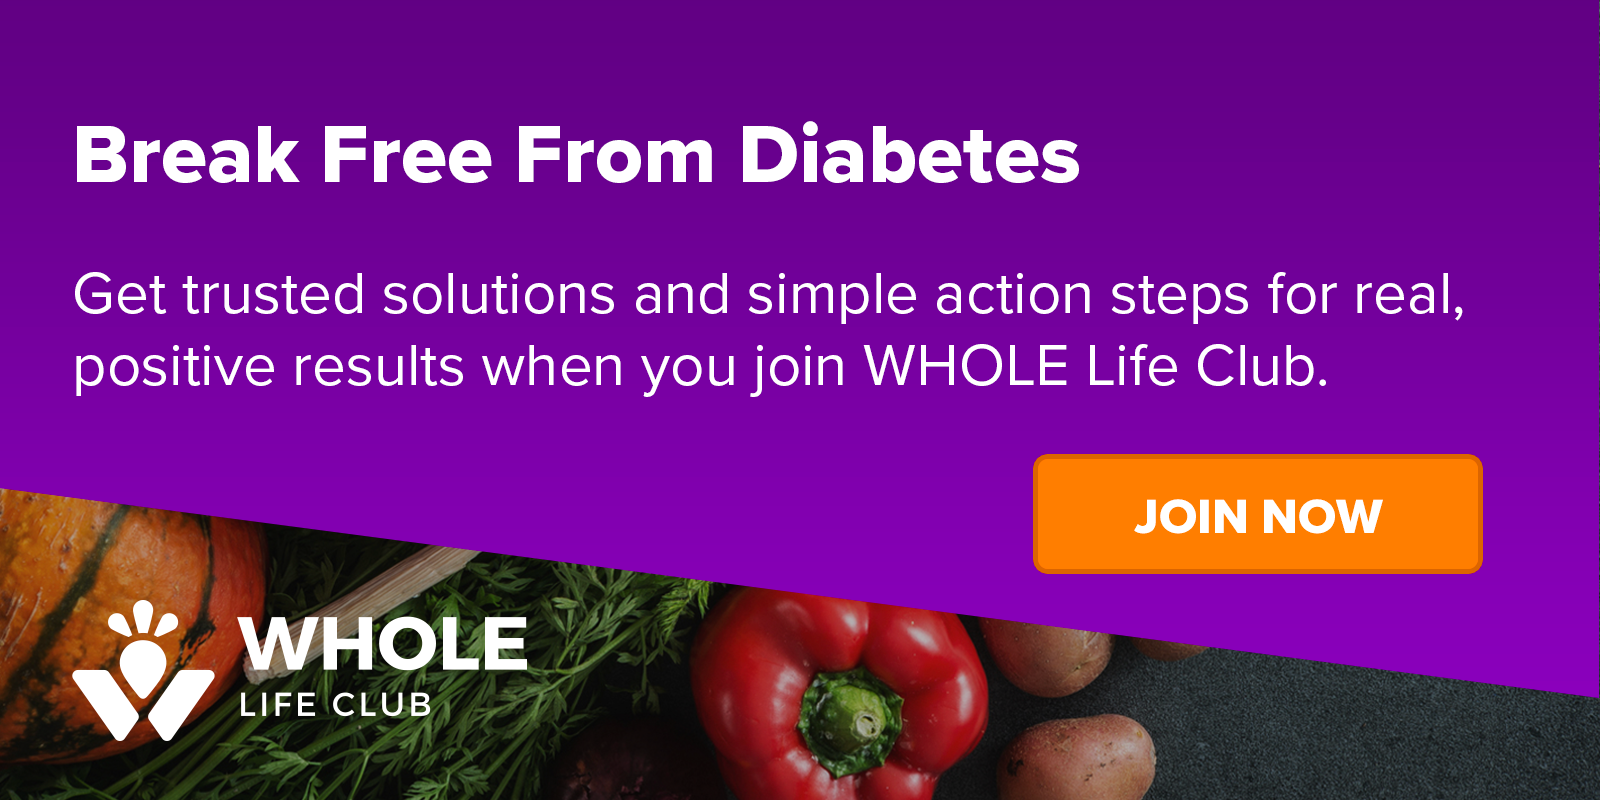 Break Free from Diabetes - Join WHOLE Life Club!